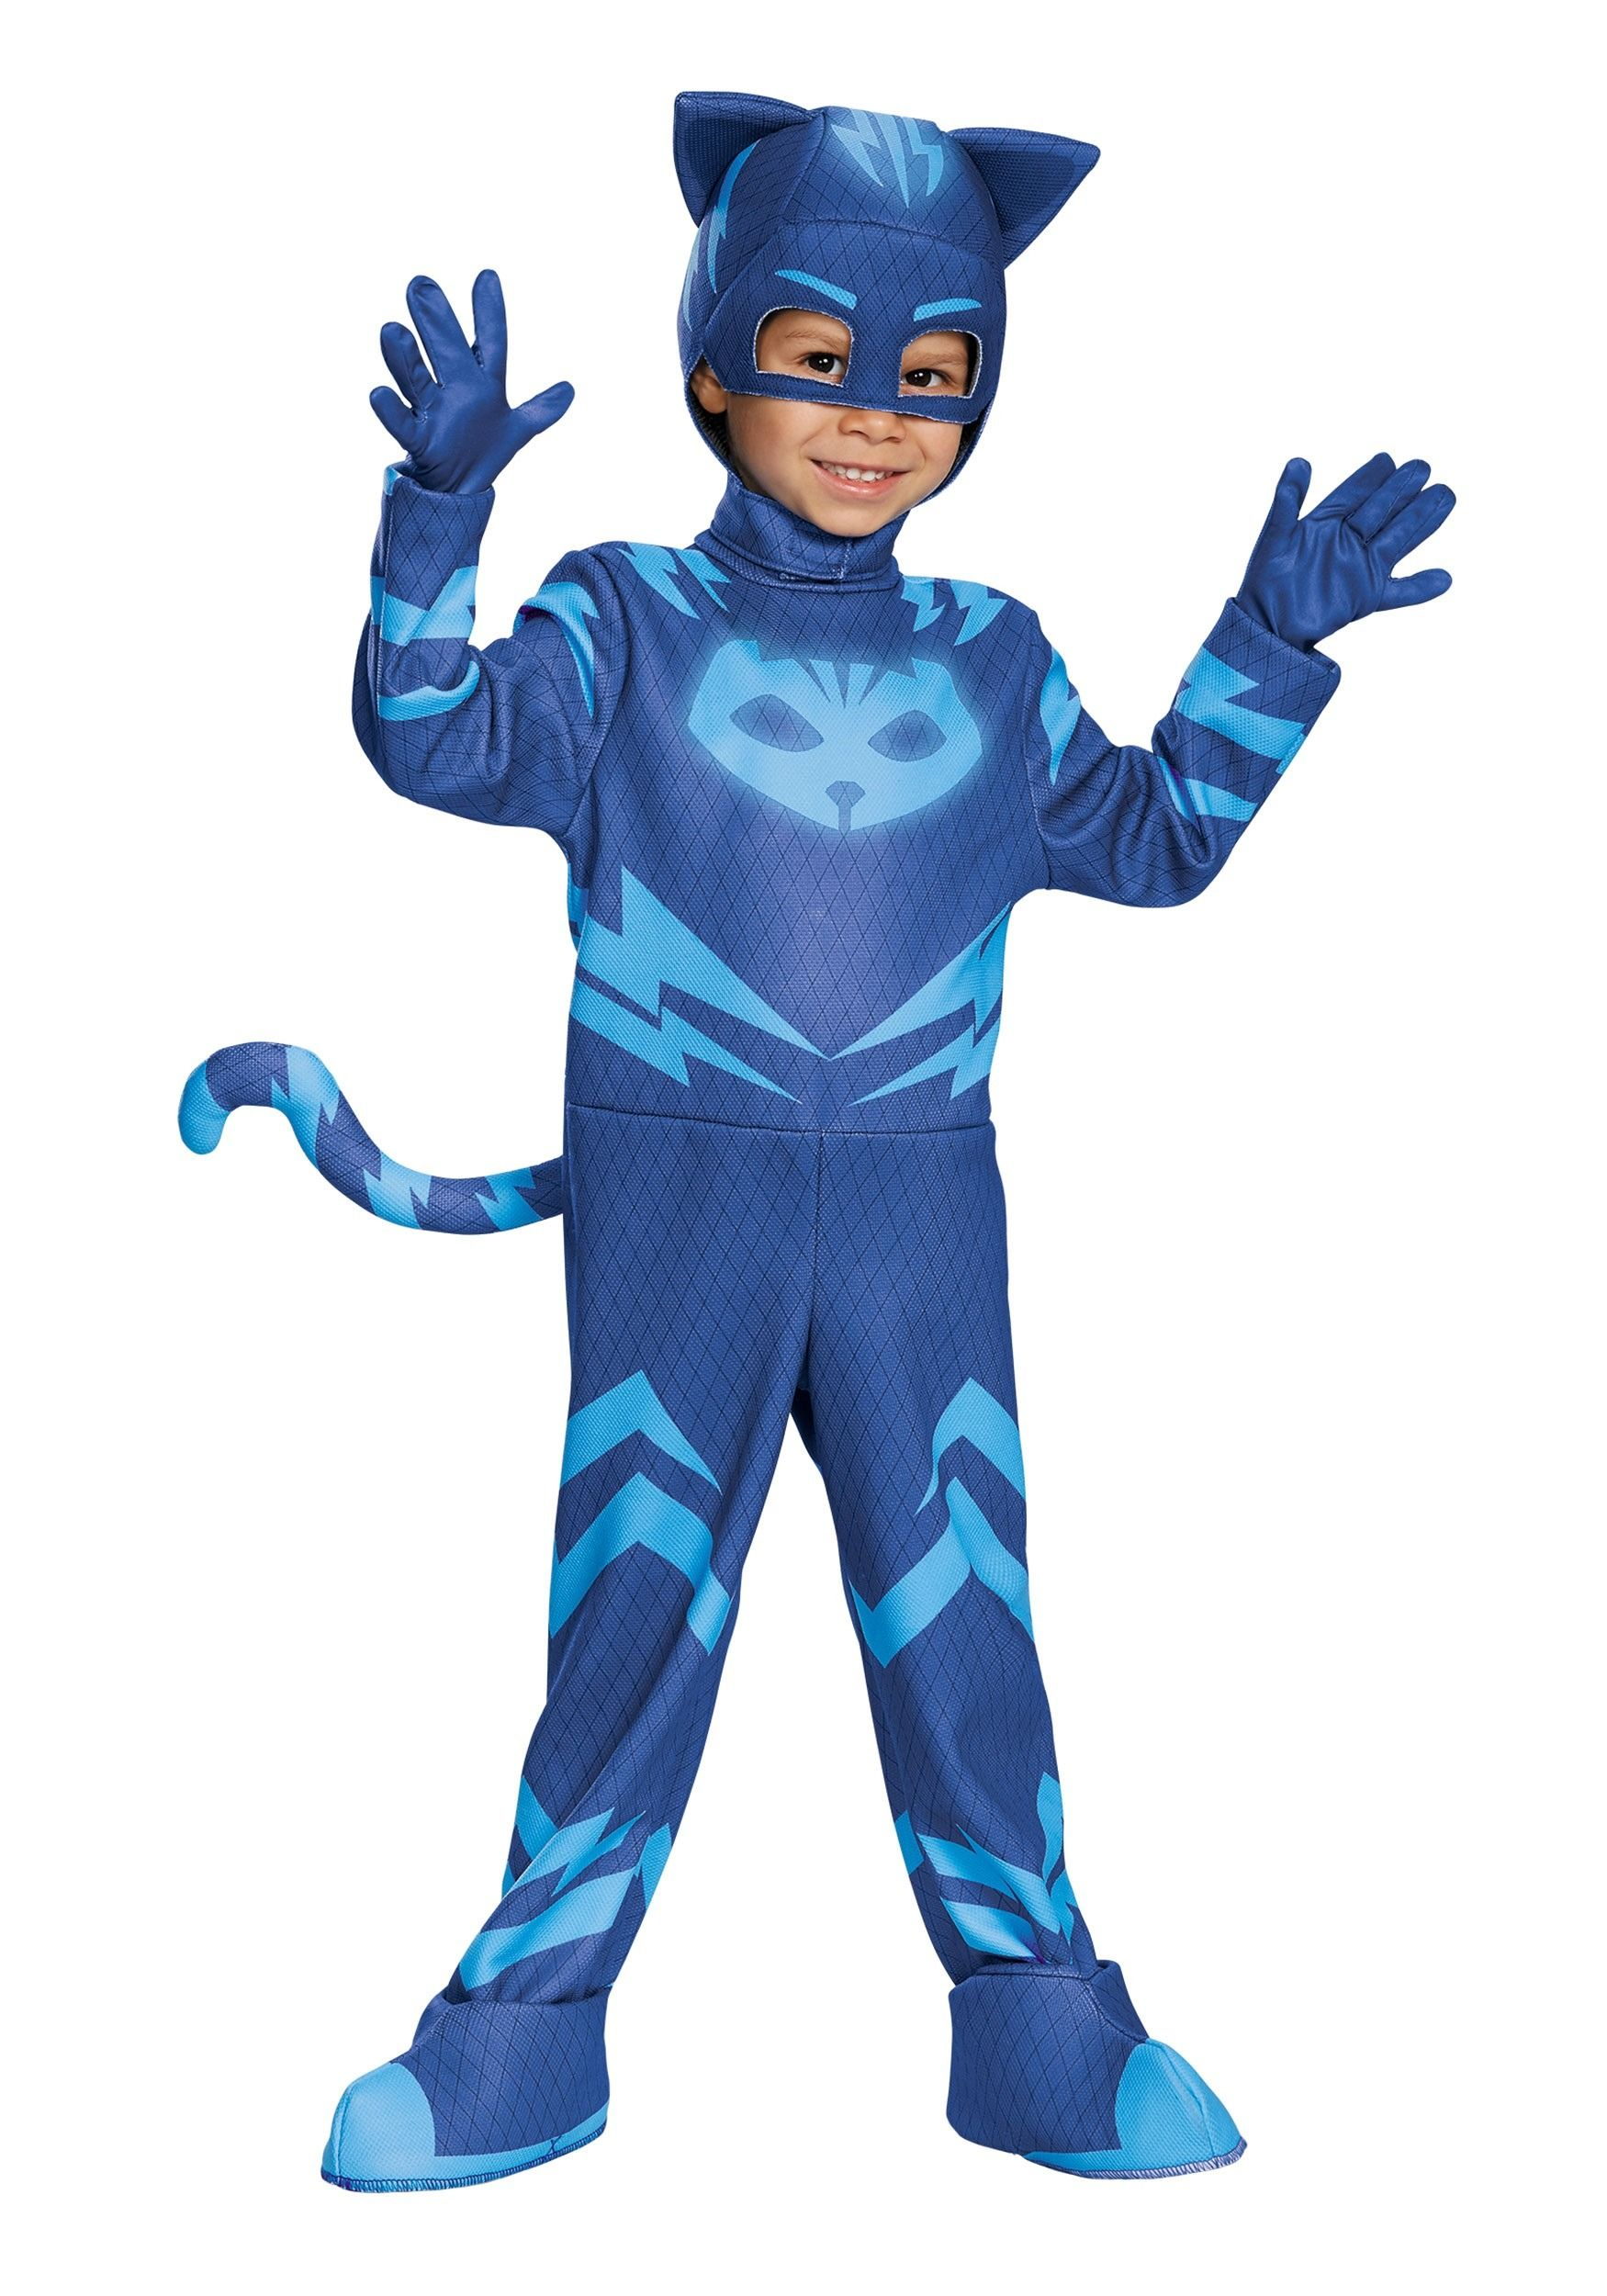 Deluxe PJ Masks Catboy Costume | Pj mask, Masking and Costumes